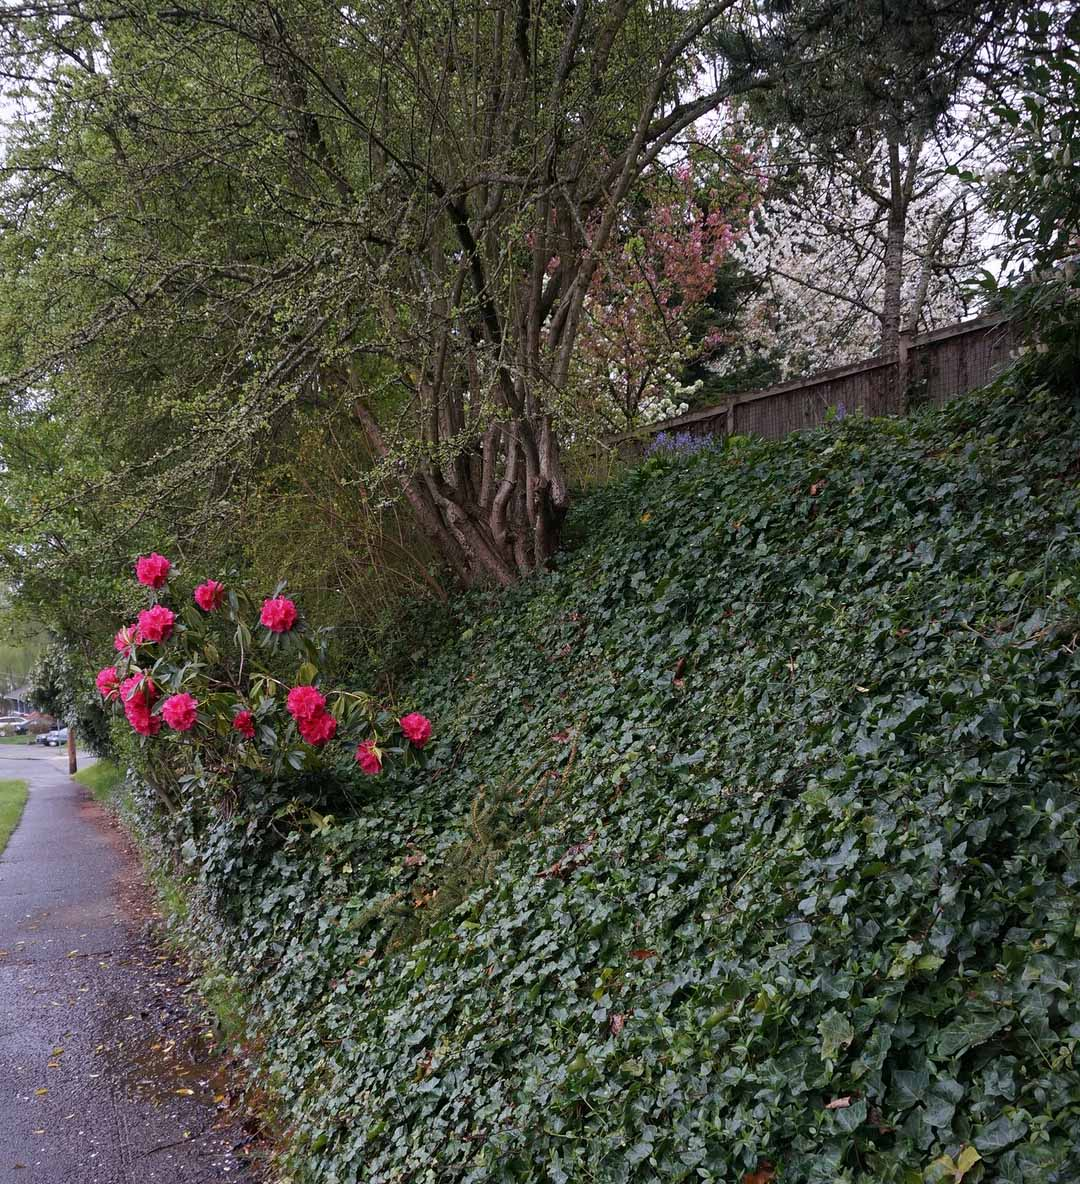 Rhododendrons on the landscape